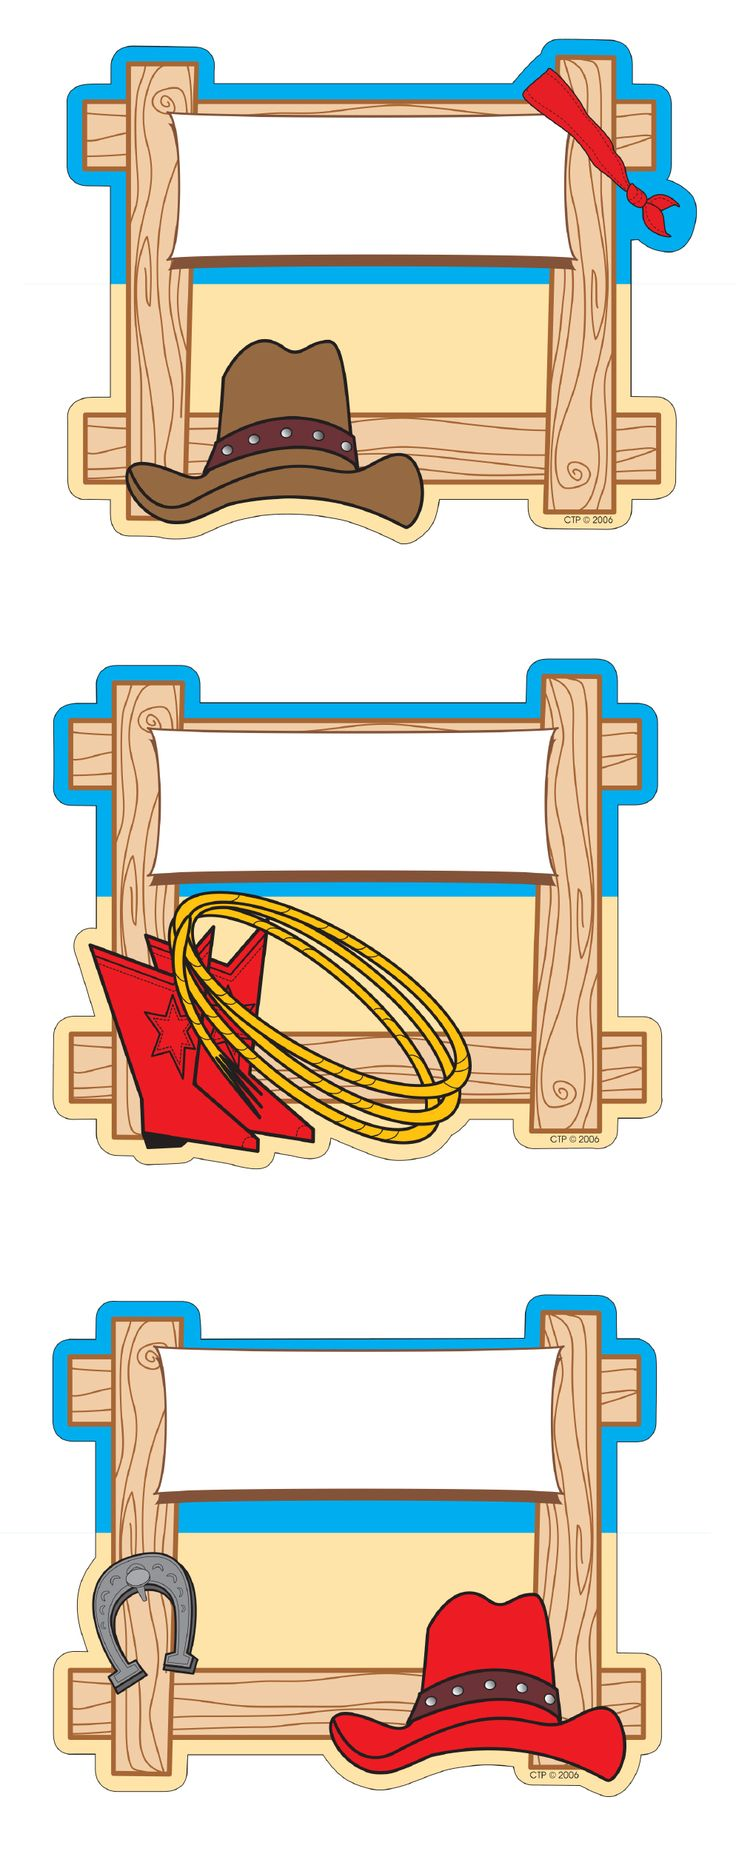 Perfect for decorating classroom walls. These fun hitching post cut-outs (or downsize to be a label) are perfect for a cowboy or country themed classroom look. Includes 3 styles:  - Hitching post with cowboy hat and bandanna - Hitching post with cowboy boots and lasso - Hitching post with cowboy hat and horseshoe